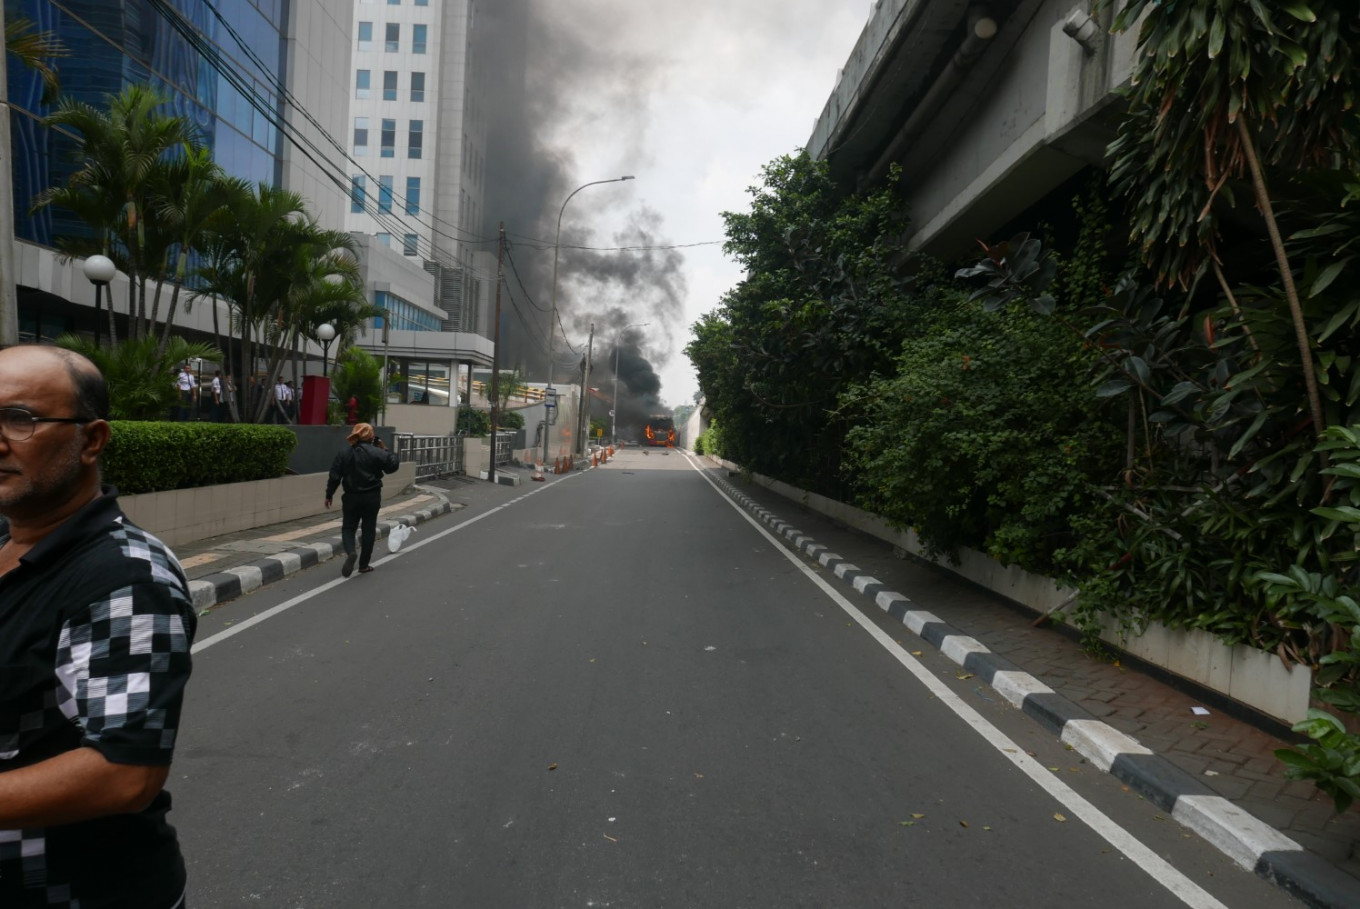 'Tempo' headline on May 22 riots violates press ethics: Indonesian Press Council